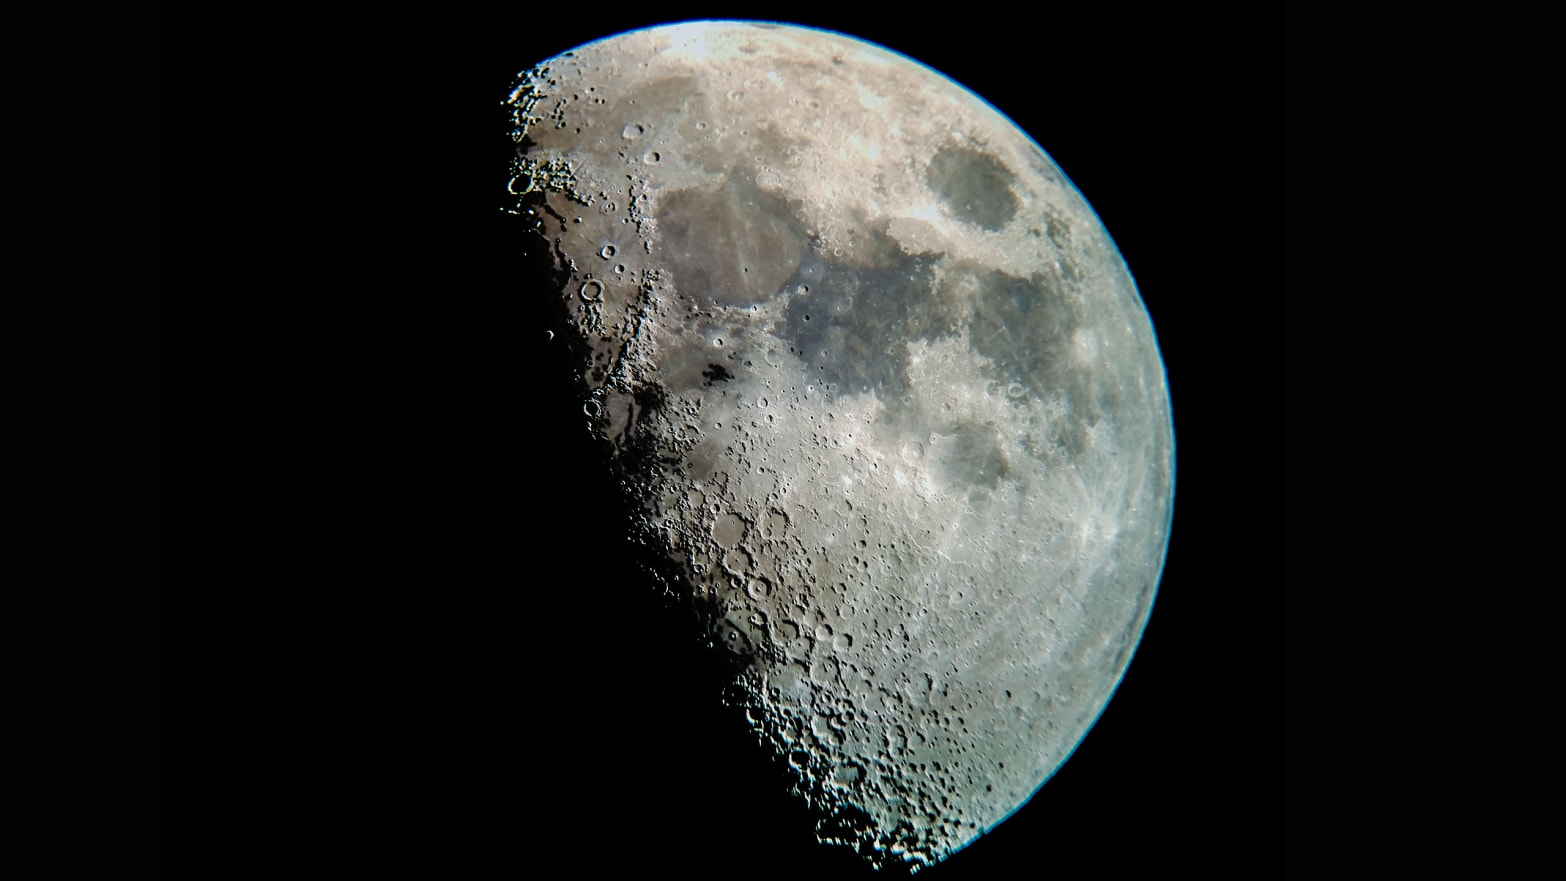 Notes On Shooting Moon >> The Moon May Have Once Had Liquid Water And Life